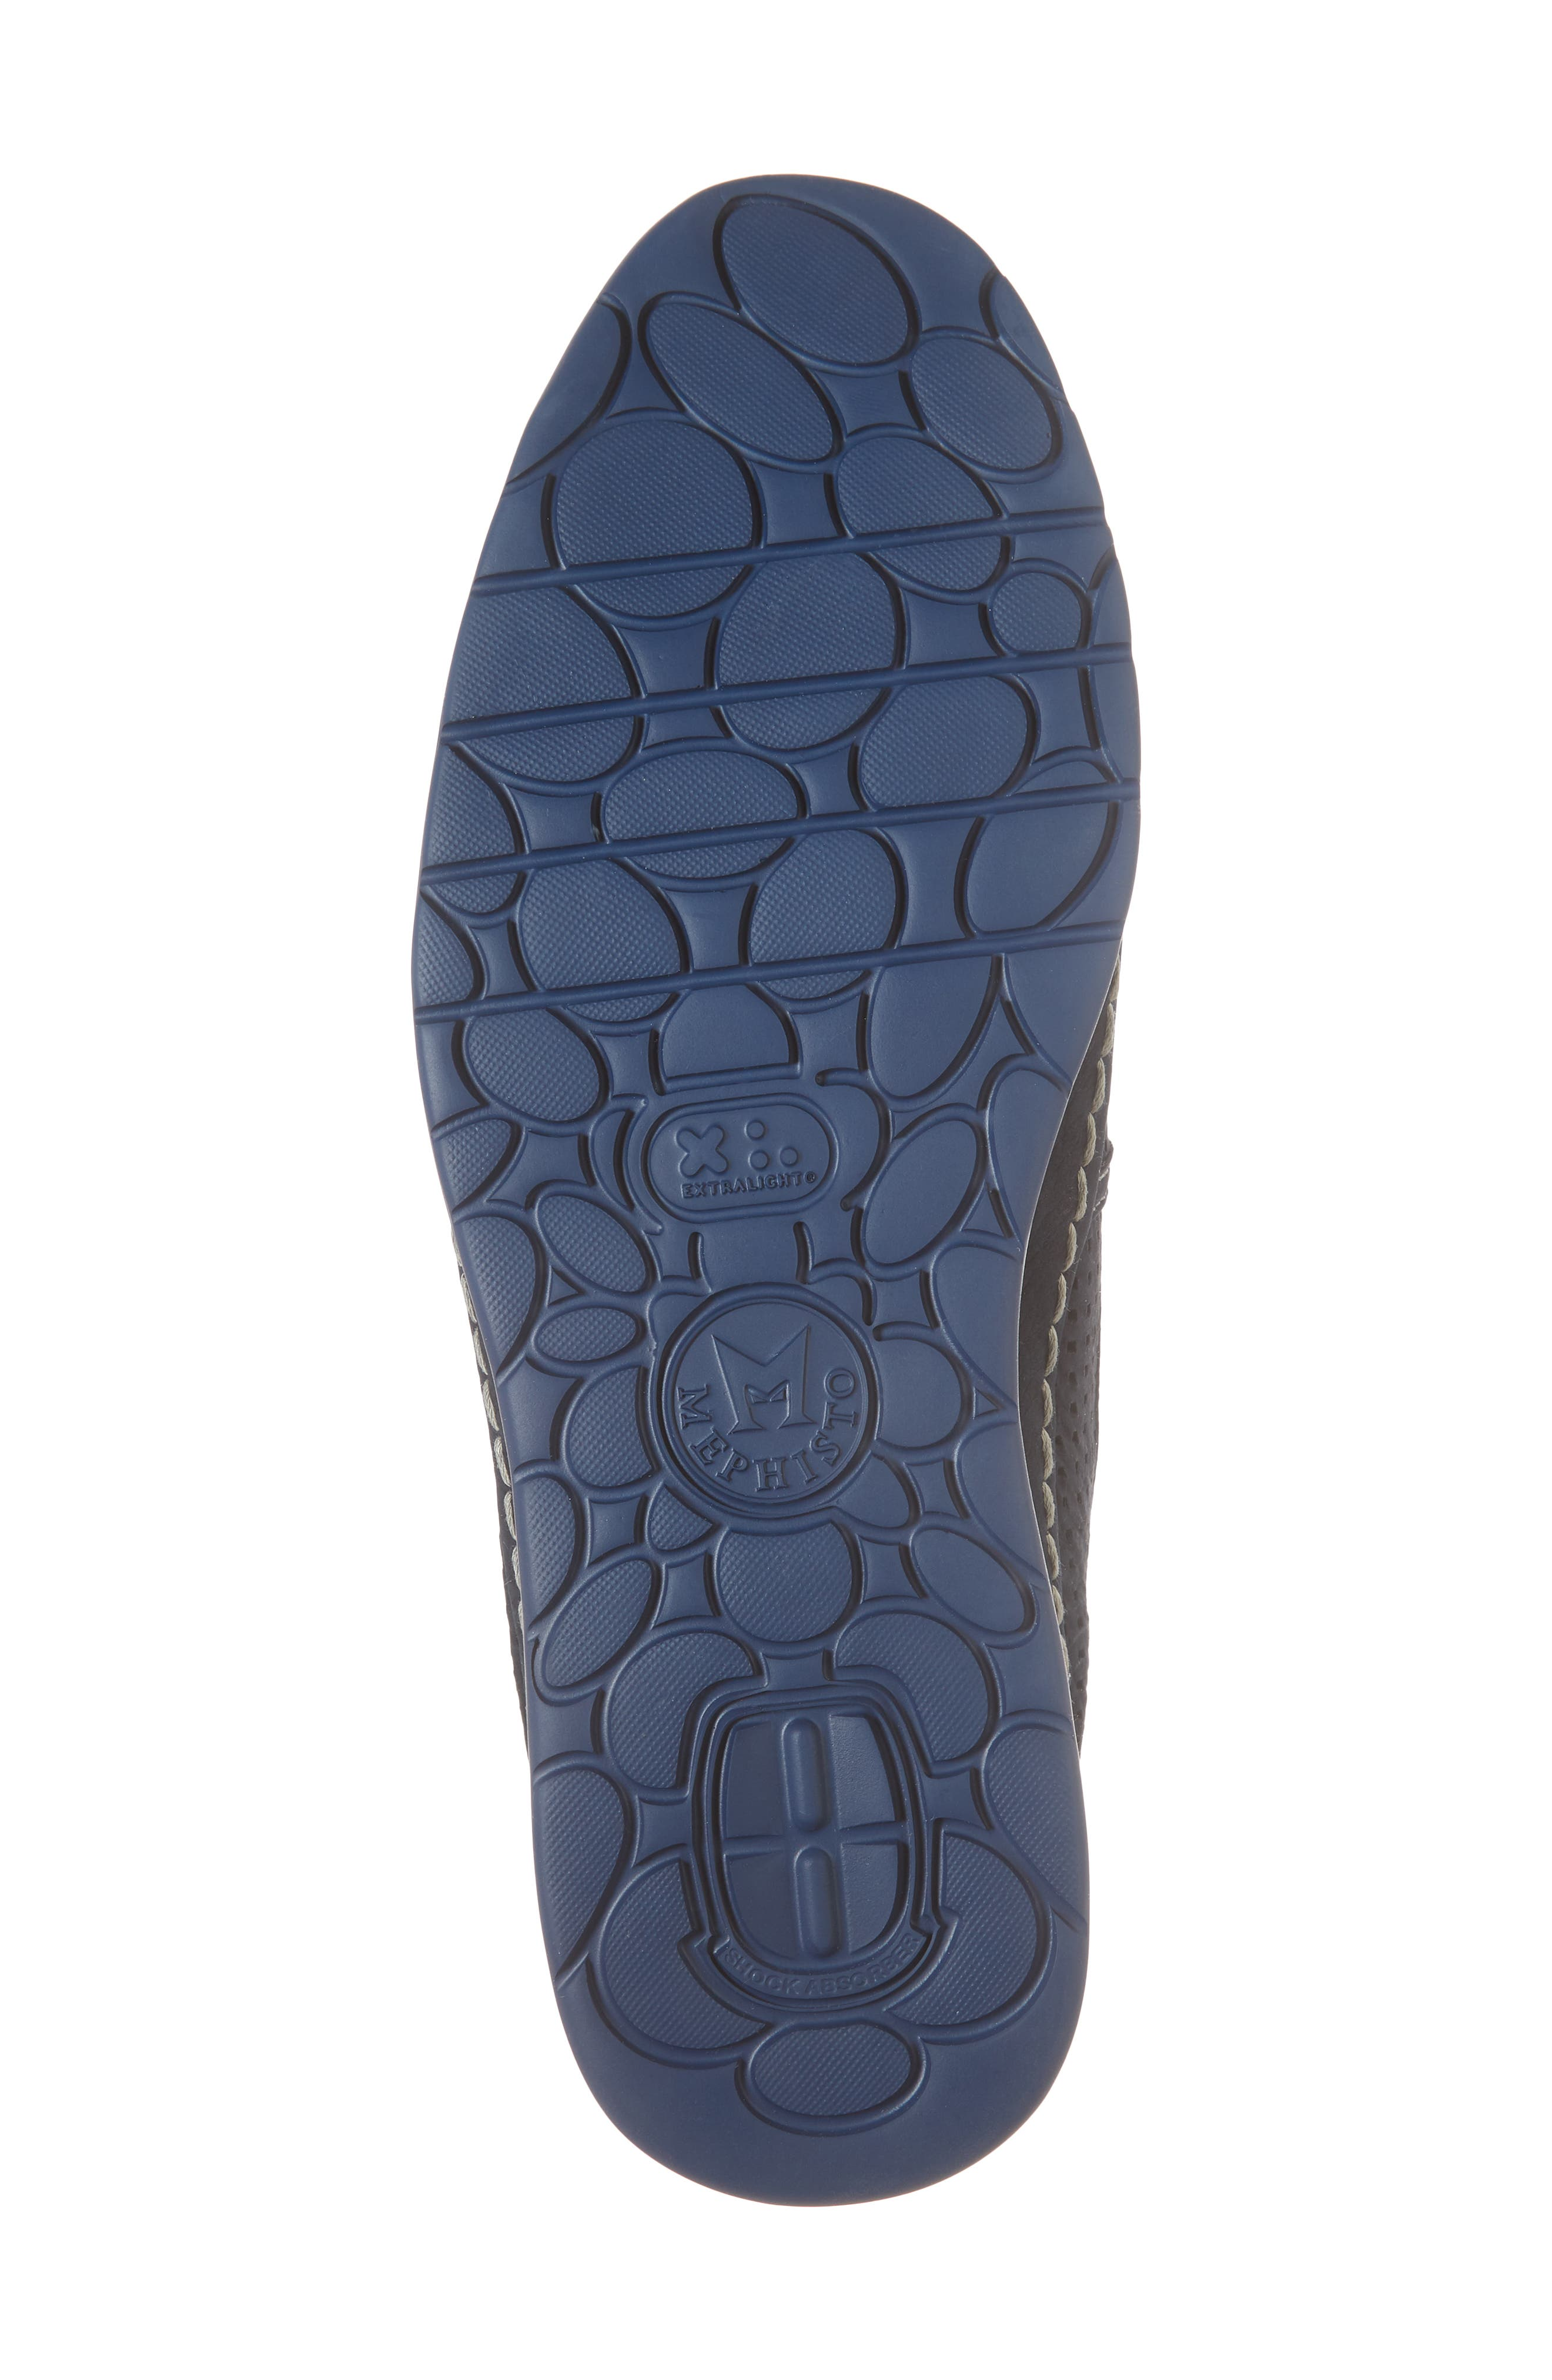 Hadrian Perforated Slip-On,                             Alternate thumbnail 6, color,                             Navy